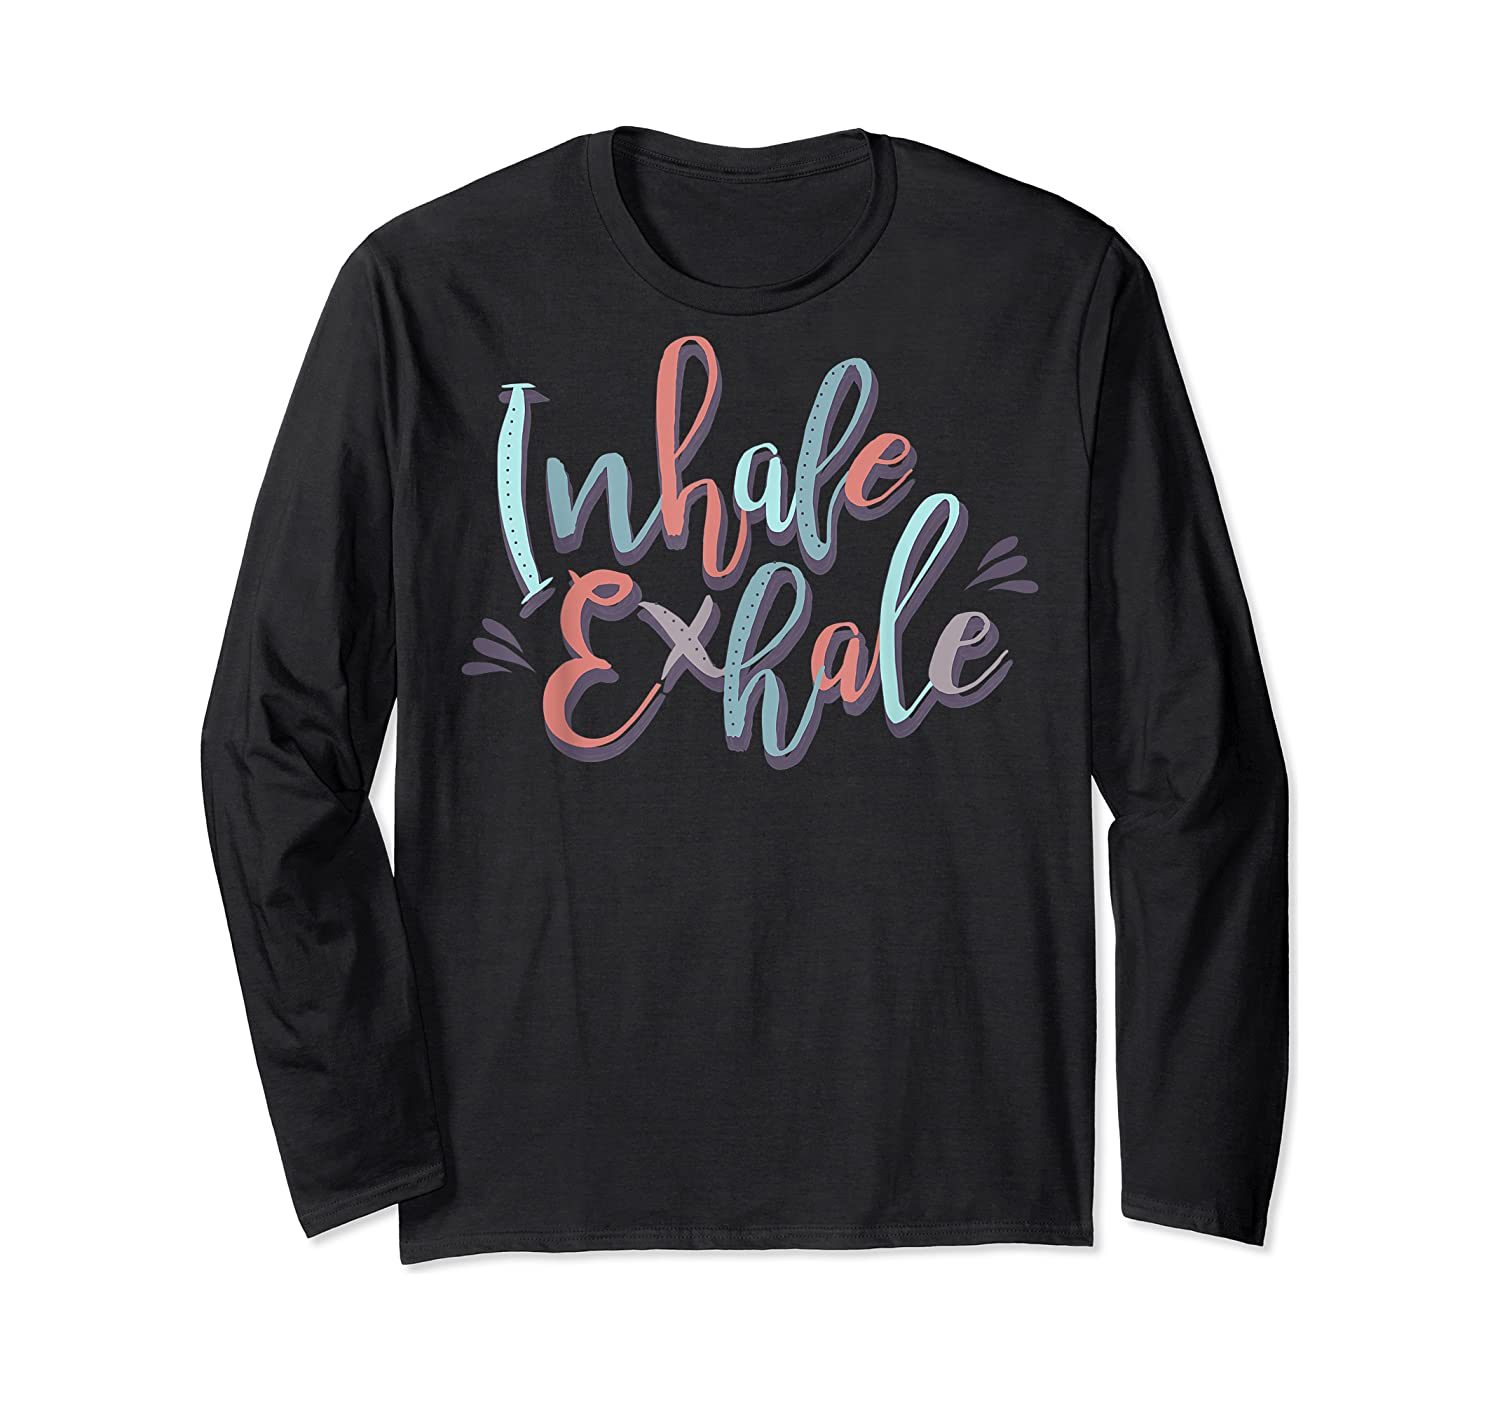 Inhale Exhale Yoga Quote Ness T-shirt Long Sleeve T-shirt